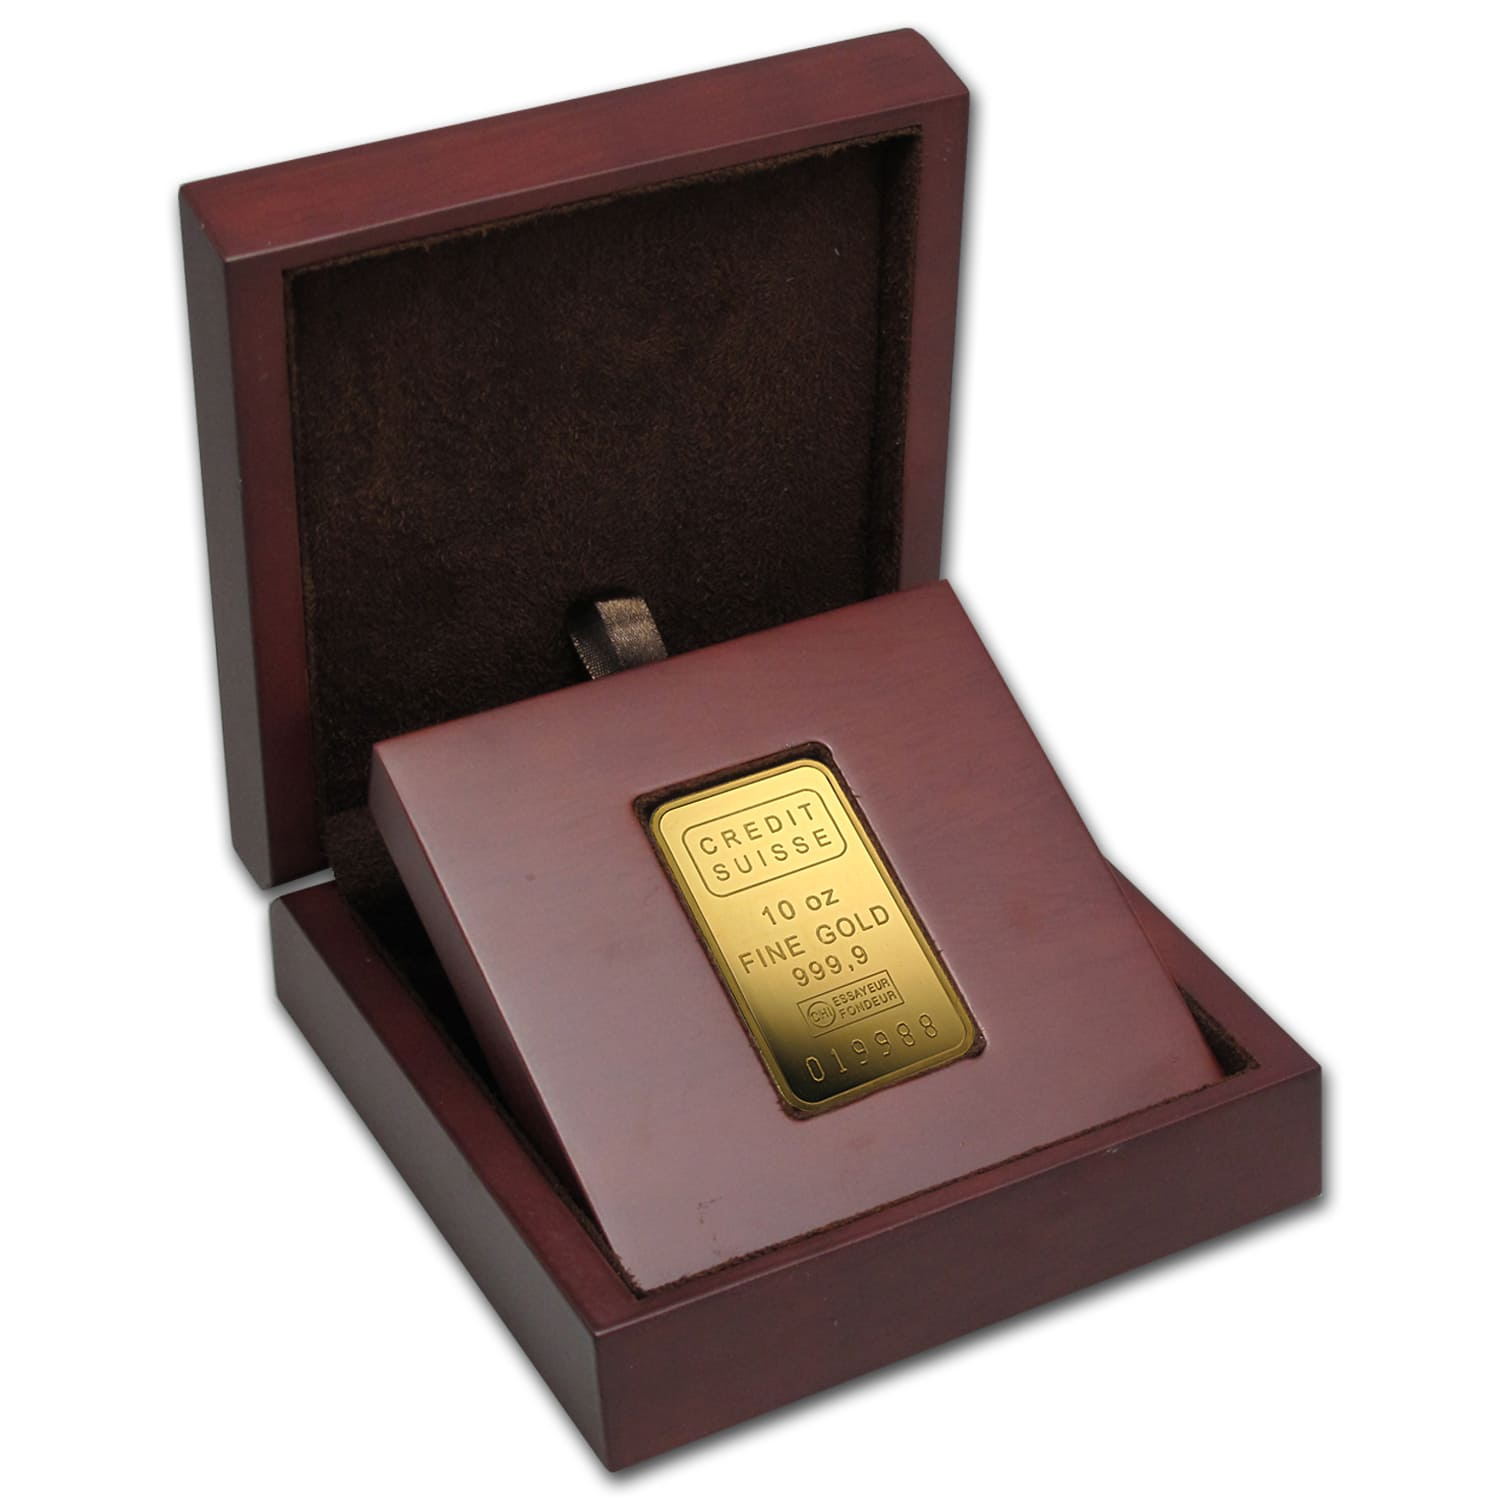 10 Oz Gold Bar Credit Suisse Credit Suisse Gold Bars